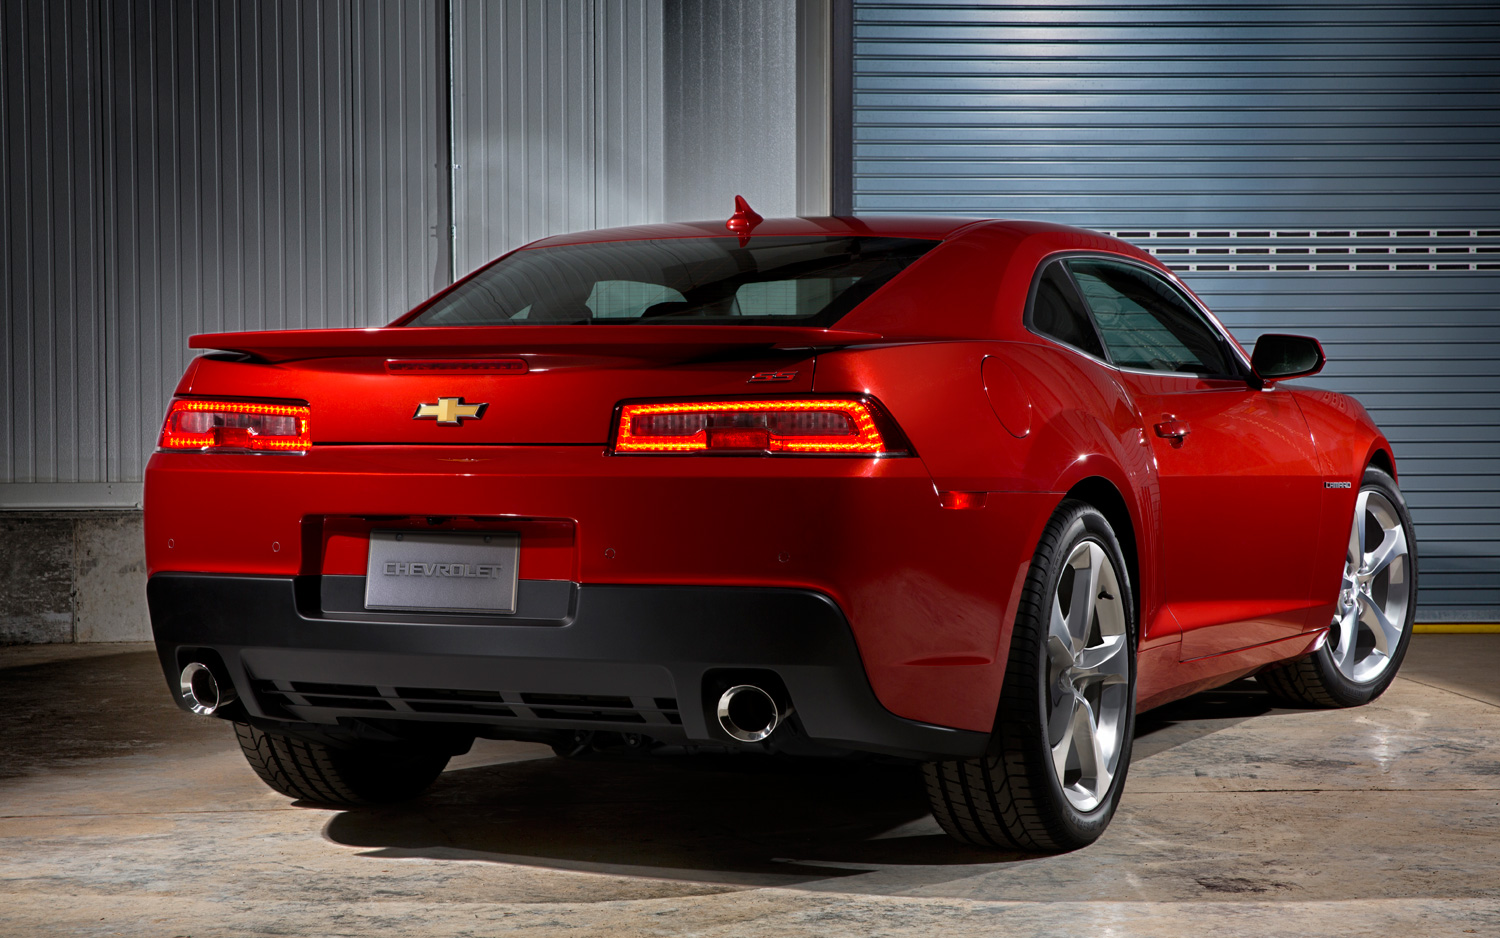 2014 camaro ss styling highlighted in new video 2014 chevrolet camaro